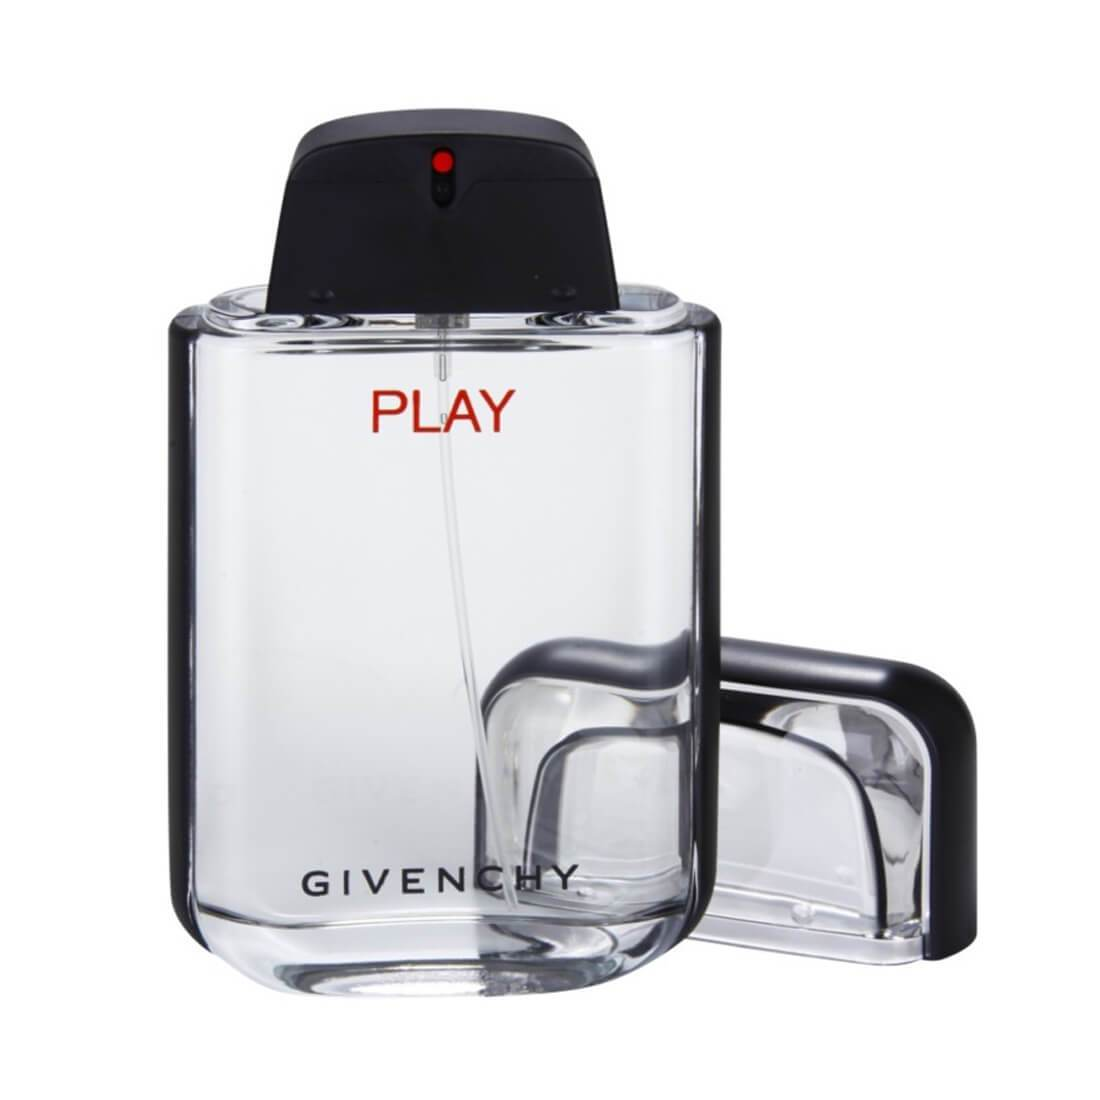 Givenchy Play For Him EDT Perfume For Men - 100ml